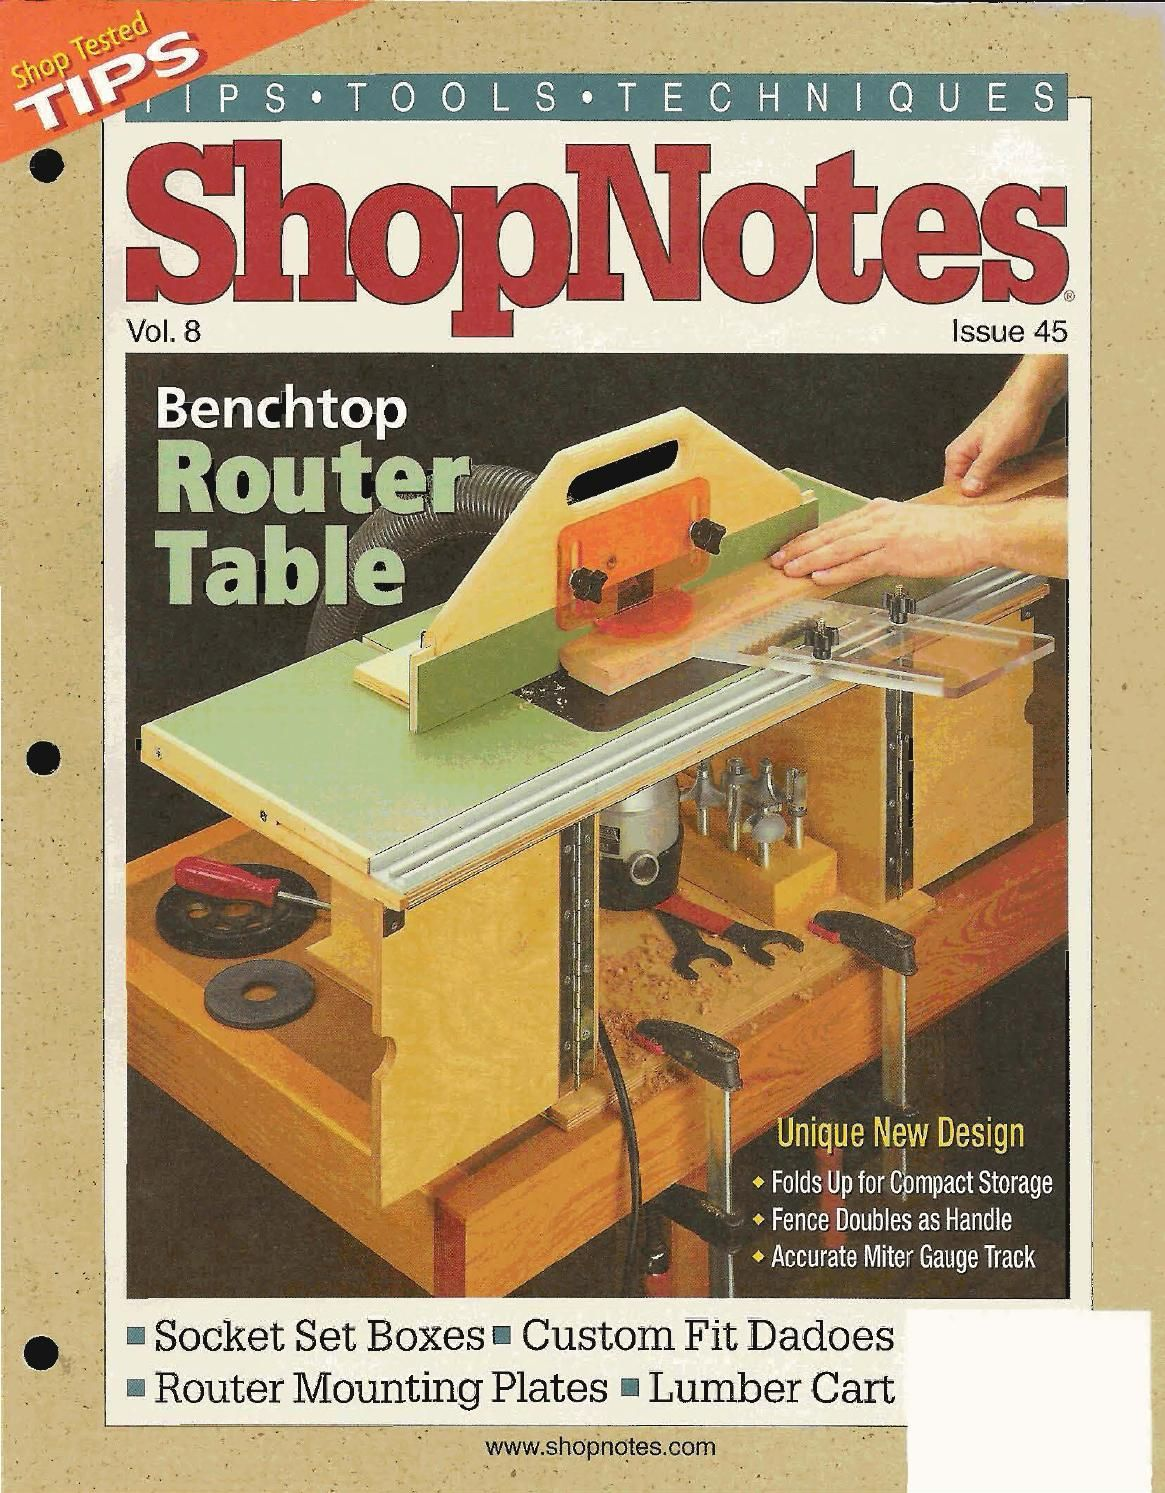 Shopnotes issue 45 shop notes pinterest woodworking note and shopnotes issue 45 woodworking magazineswoodworking shopwoodworking plansrouter tableworkshop greentooth Images